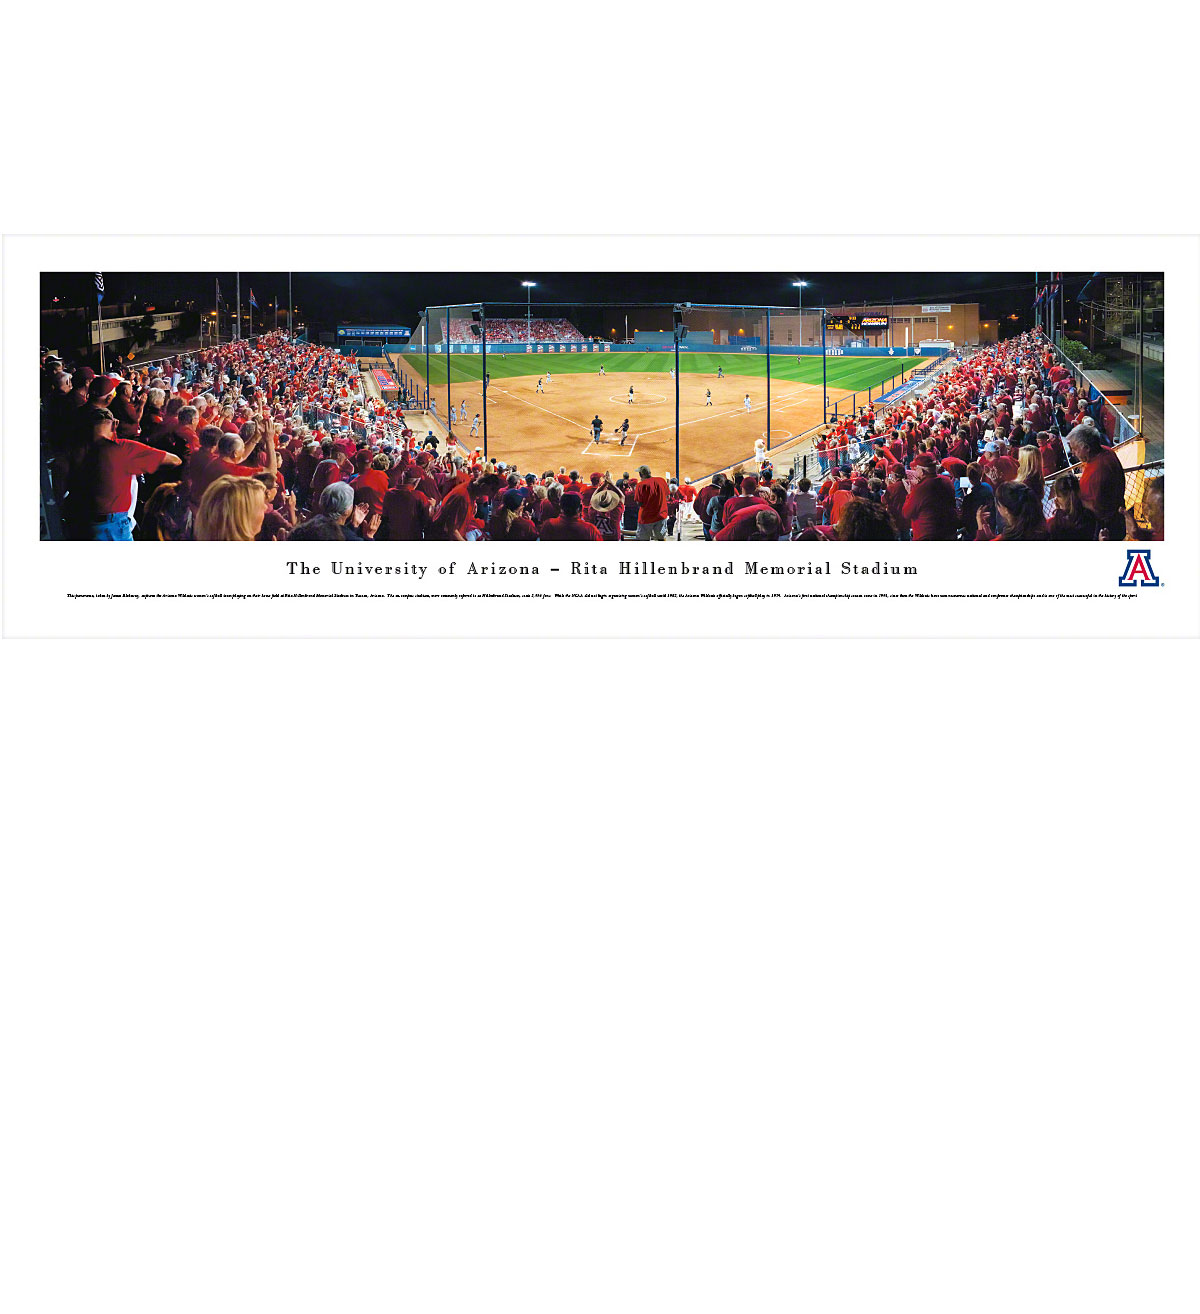 Arizona Panoramic Rita Hillenbrand Memorial Softball Stadium